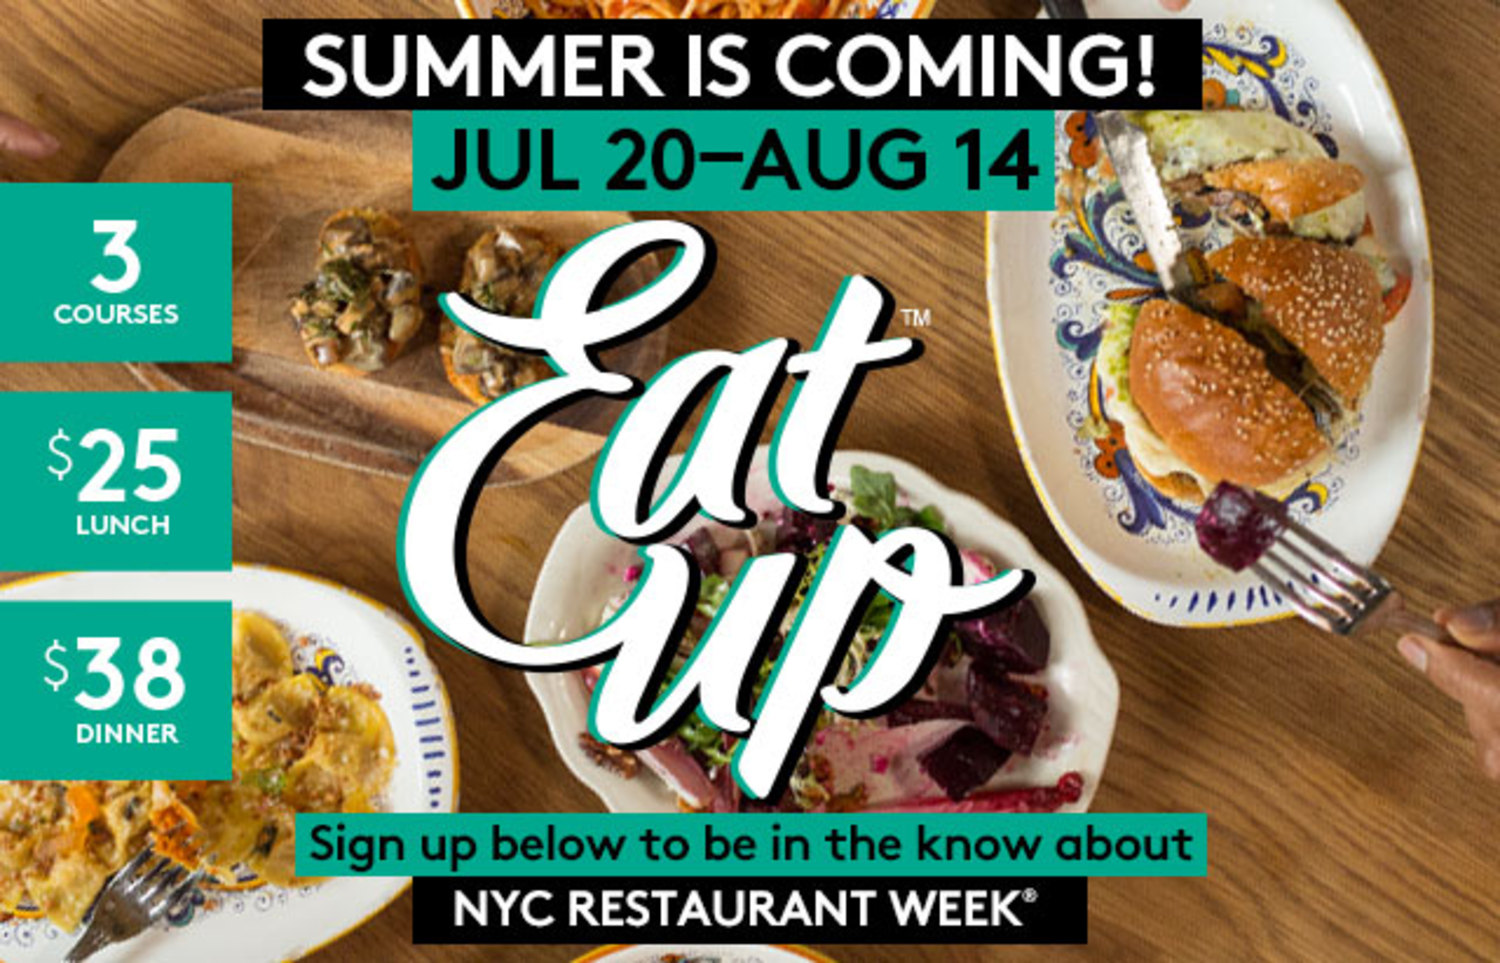 NYC Restaurant Week Summer: Jul 20th - Aug 14th